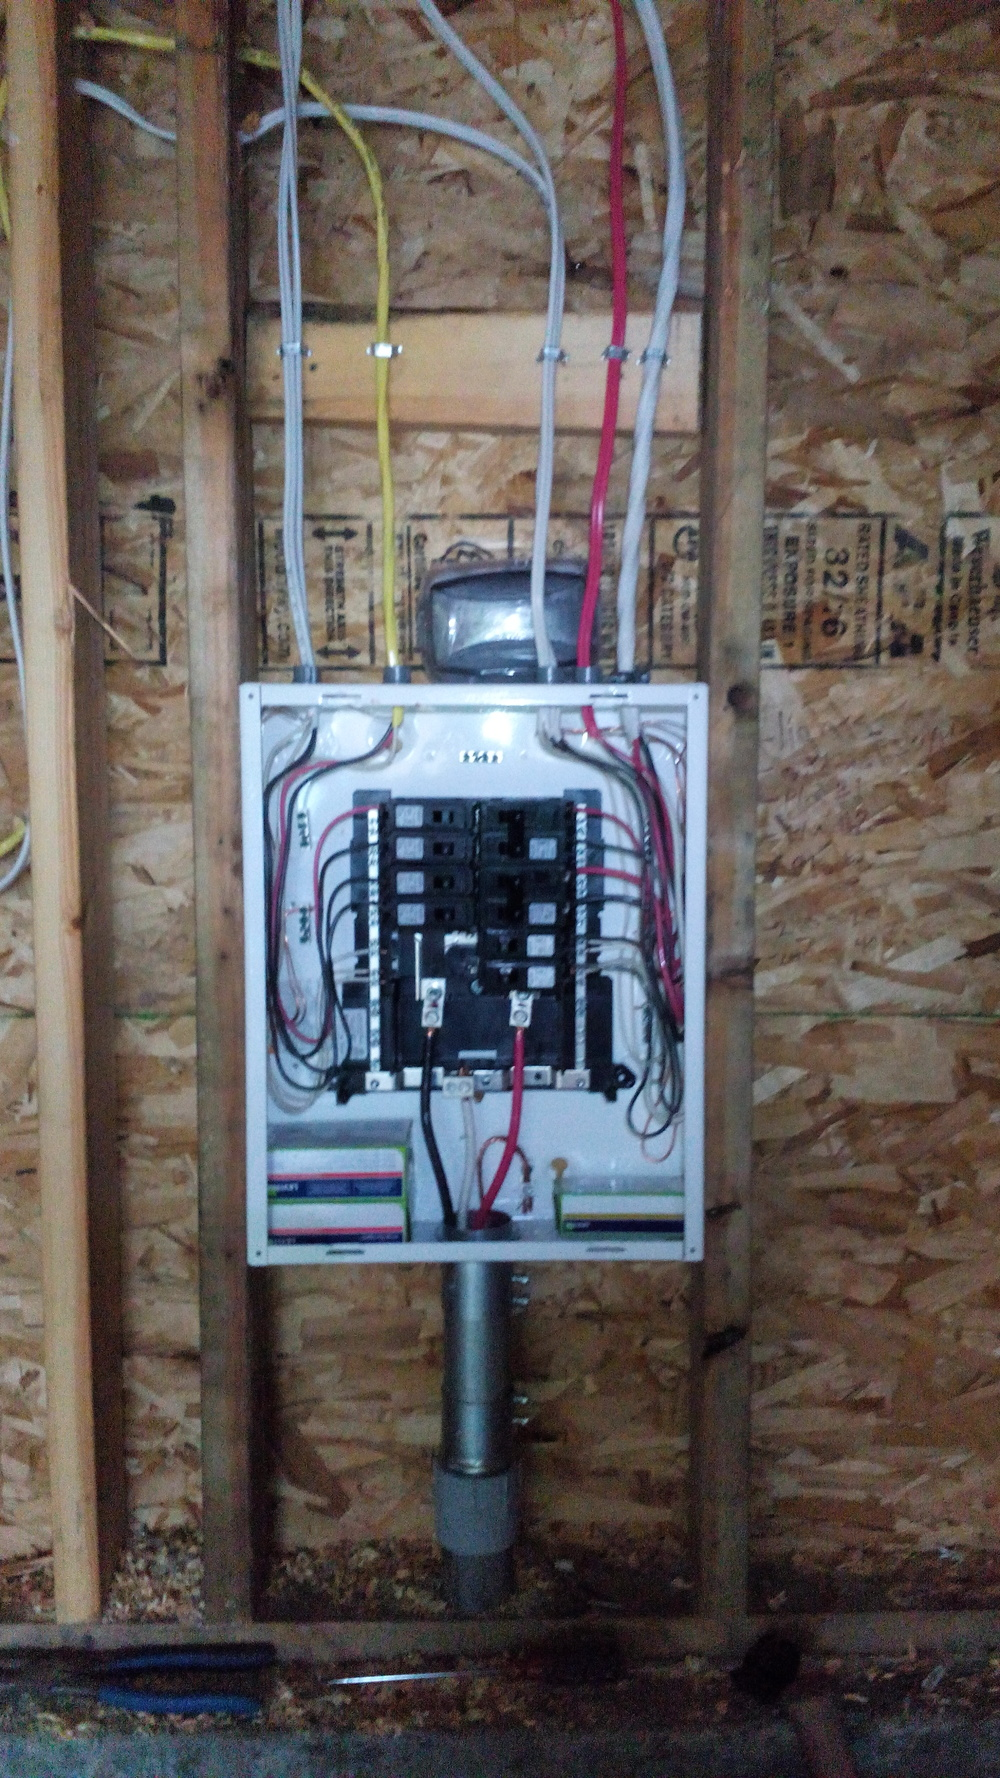 Electrical Panel in Garage